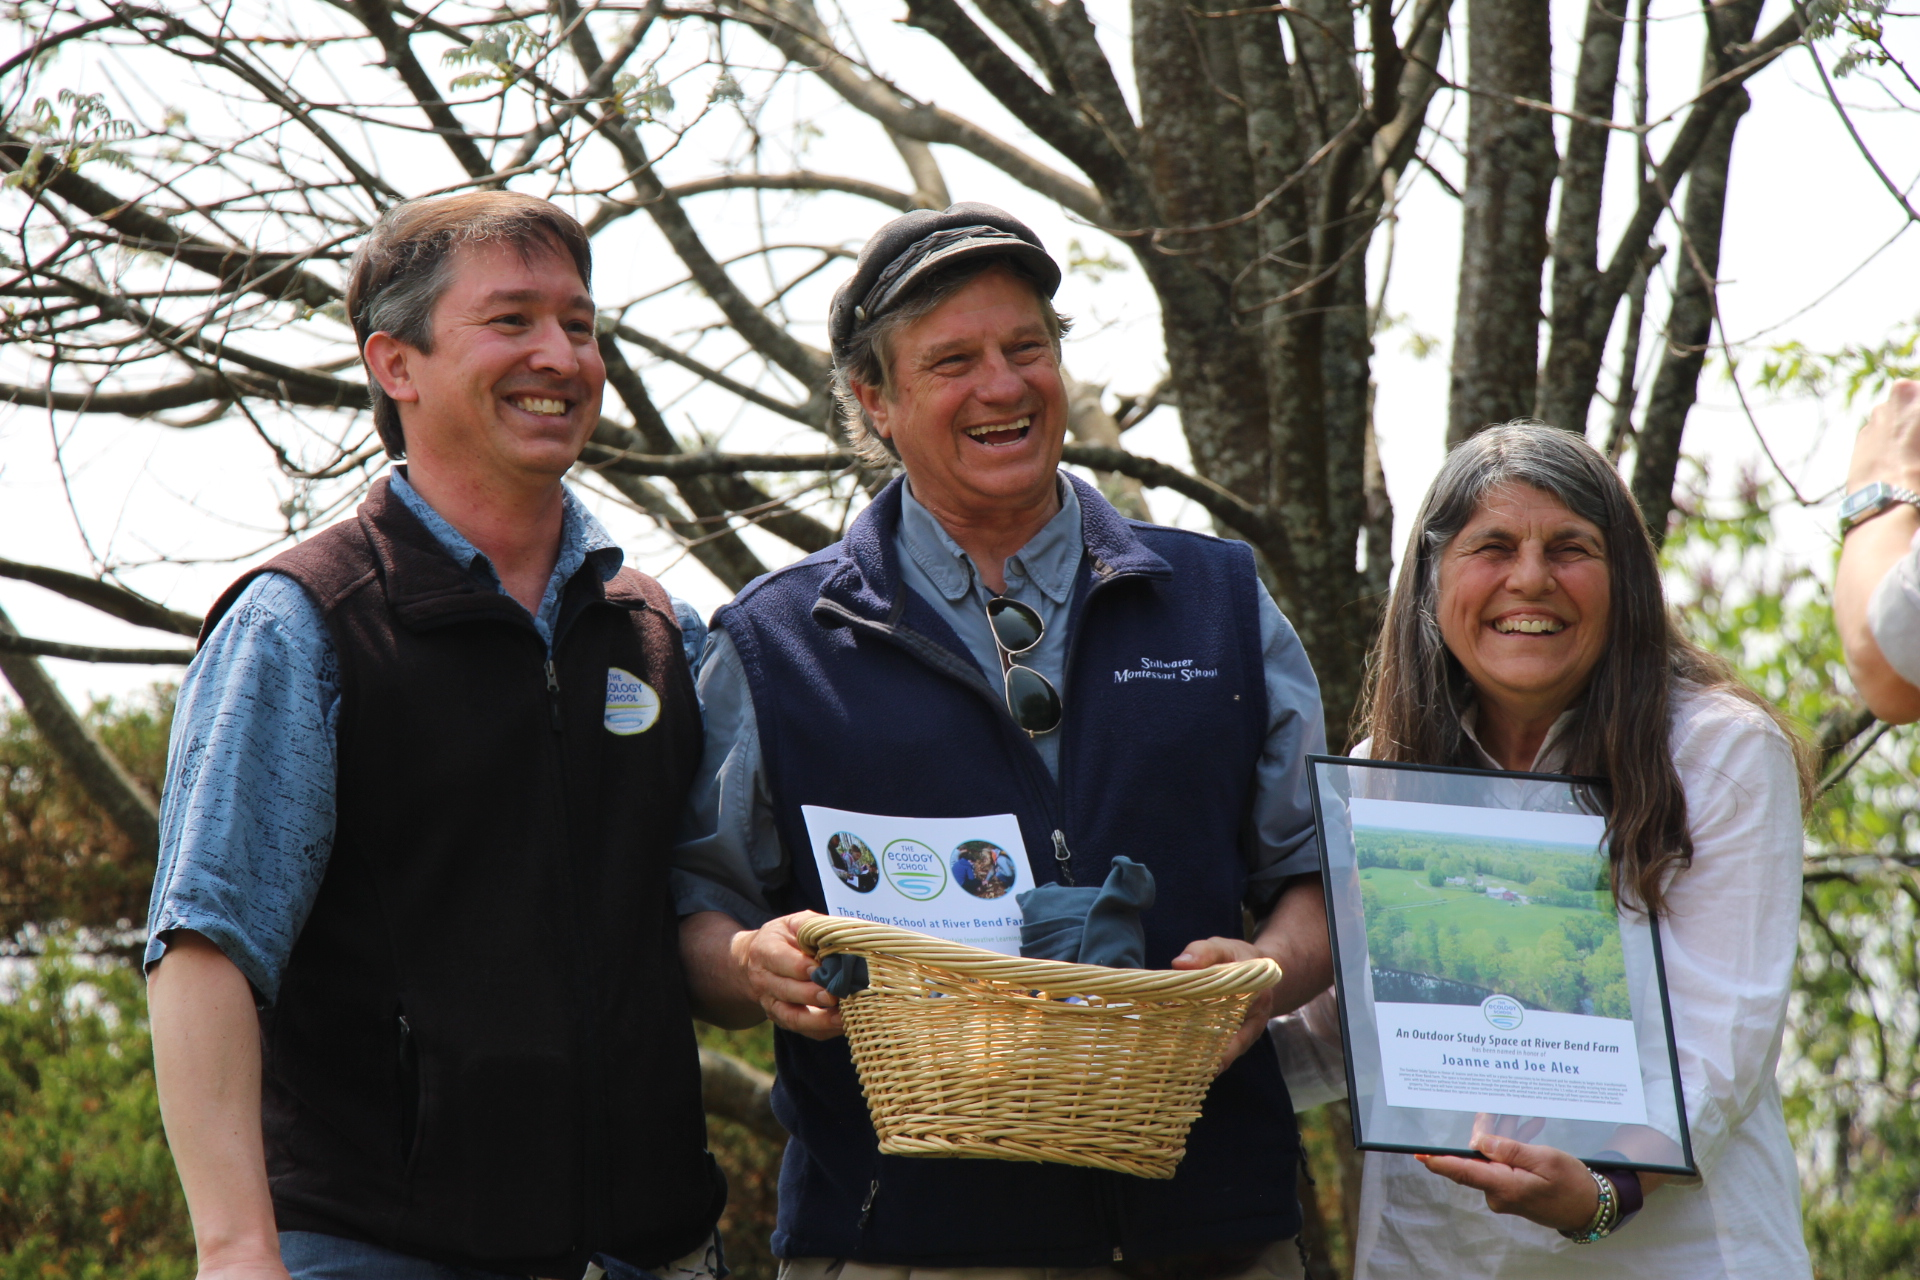 Drew Dumsch, The Ecology School President & CEO, presents Joe and Joanne Alex with recognition of their named outdoor study space on June 1, 2019.